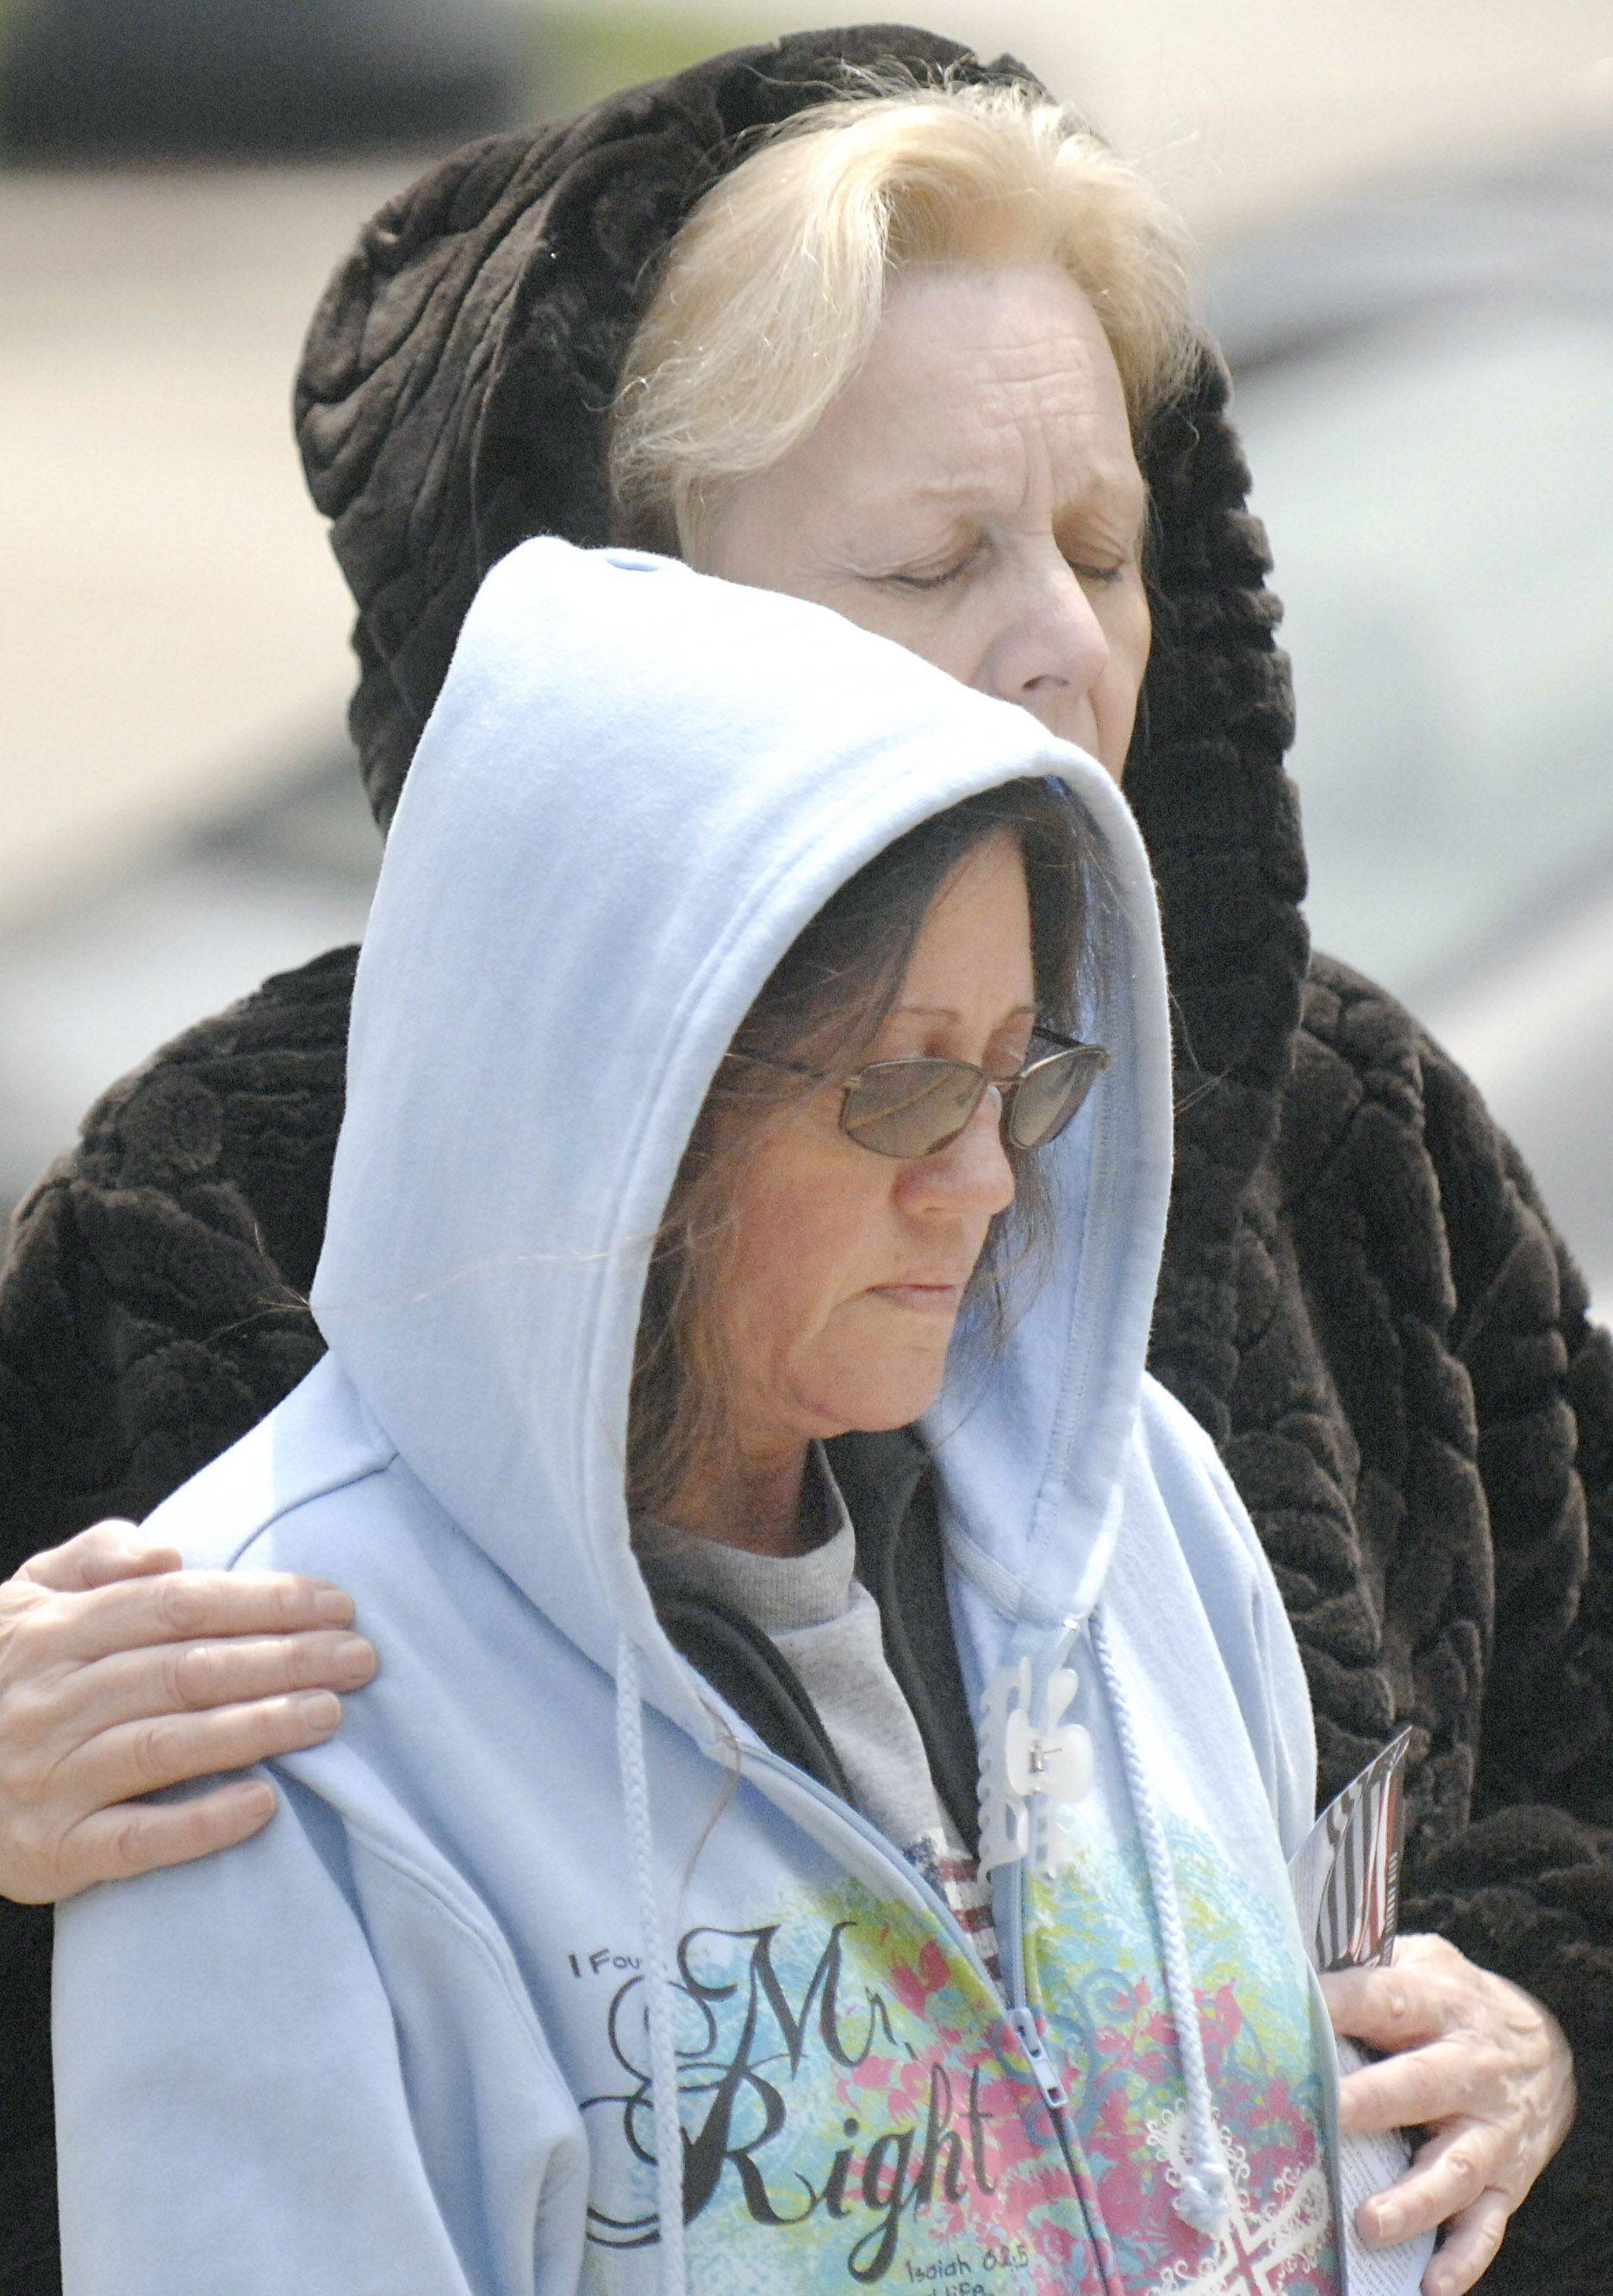 Sherry Koster, left, and Diane Erickson, both of Geneva, participate in the National Day of Prayer service held on the steps of the old Kane County Courthouse in Geneva on Thursday, May 5.